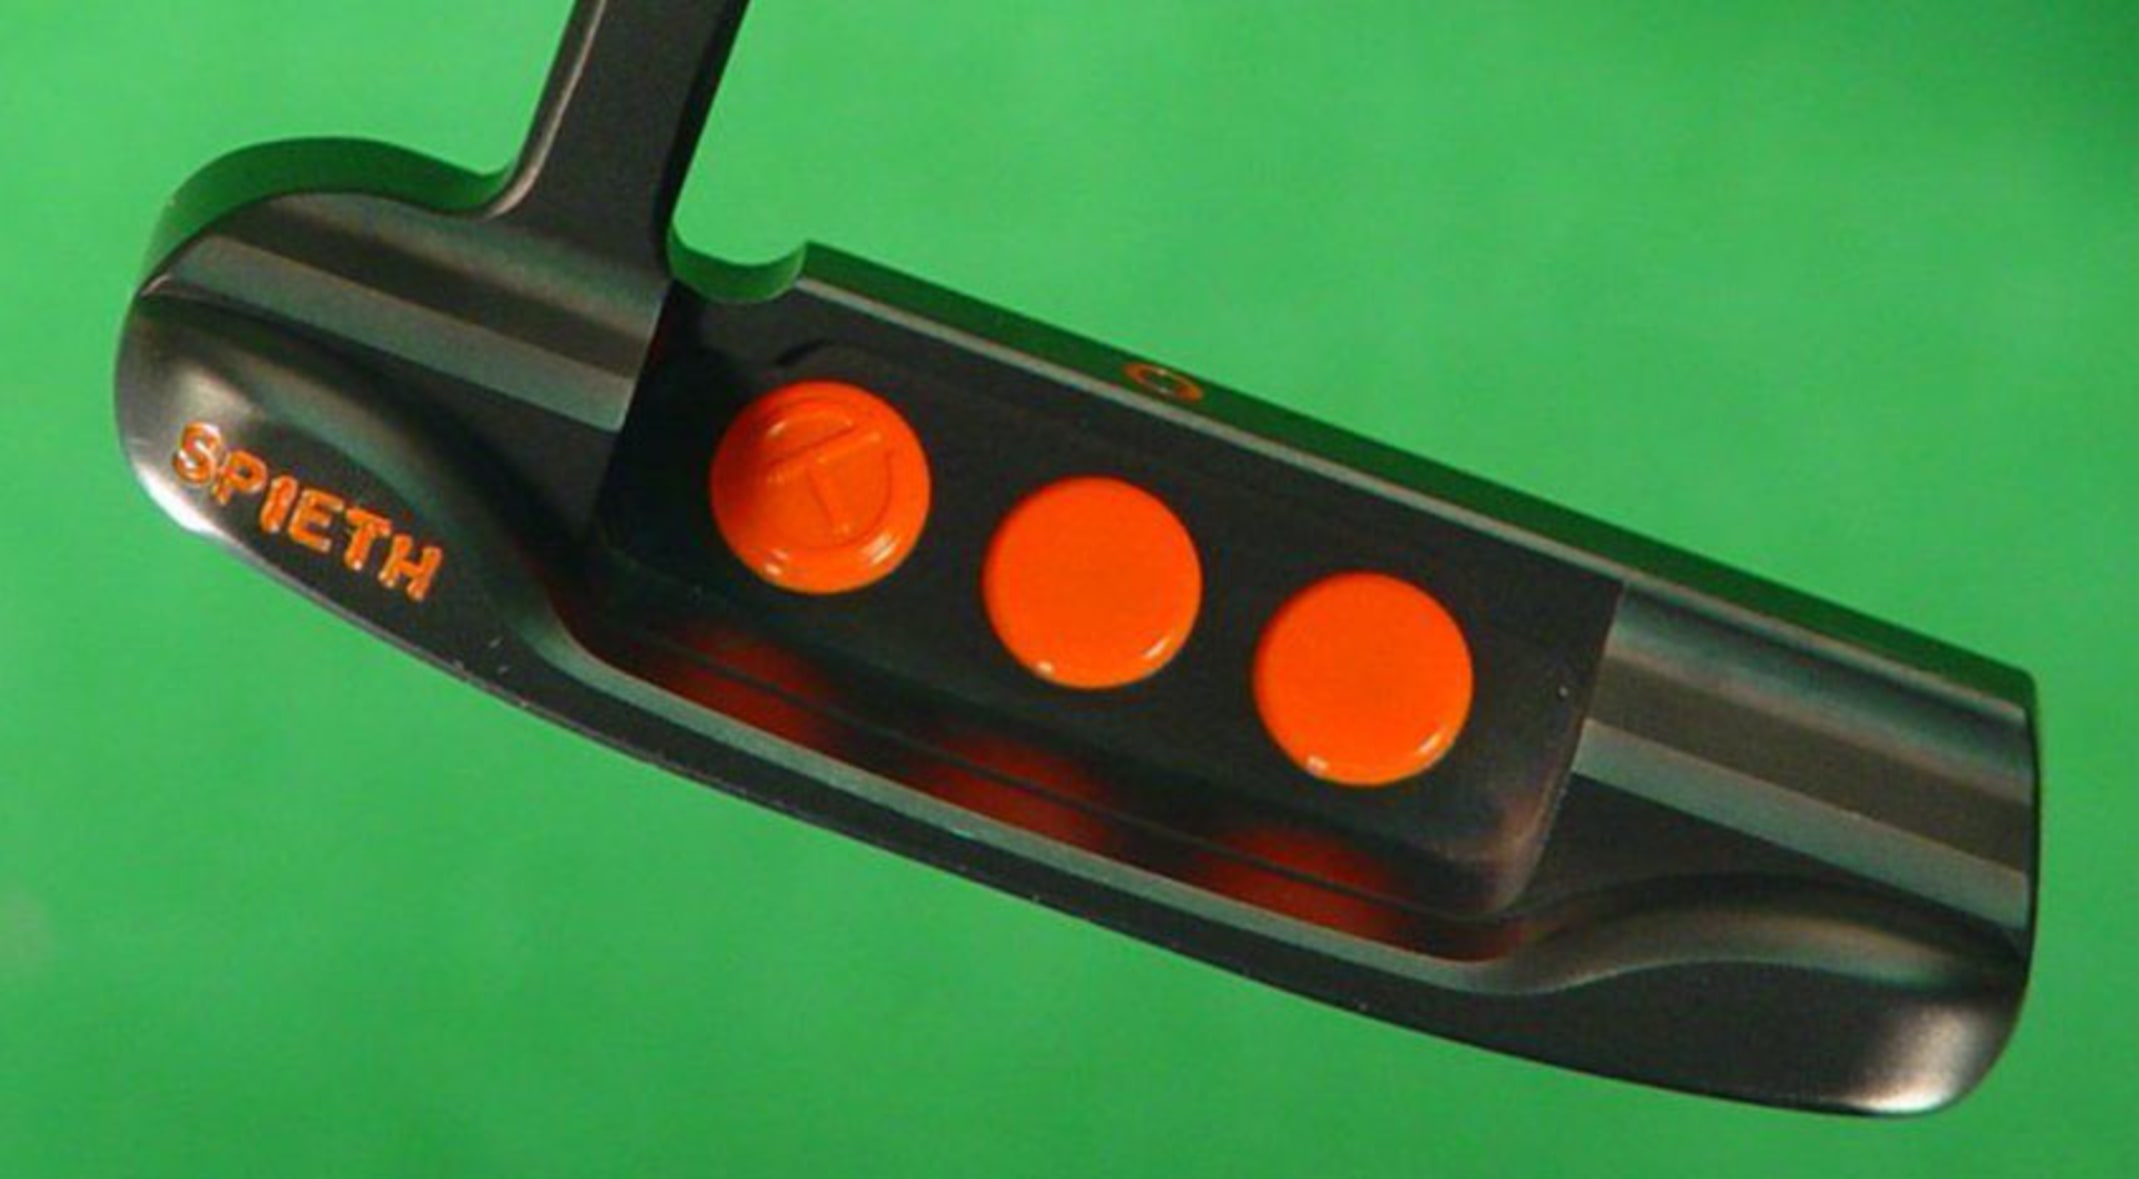 Spieth Scotty Cameron selling or $18,000